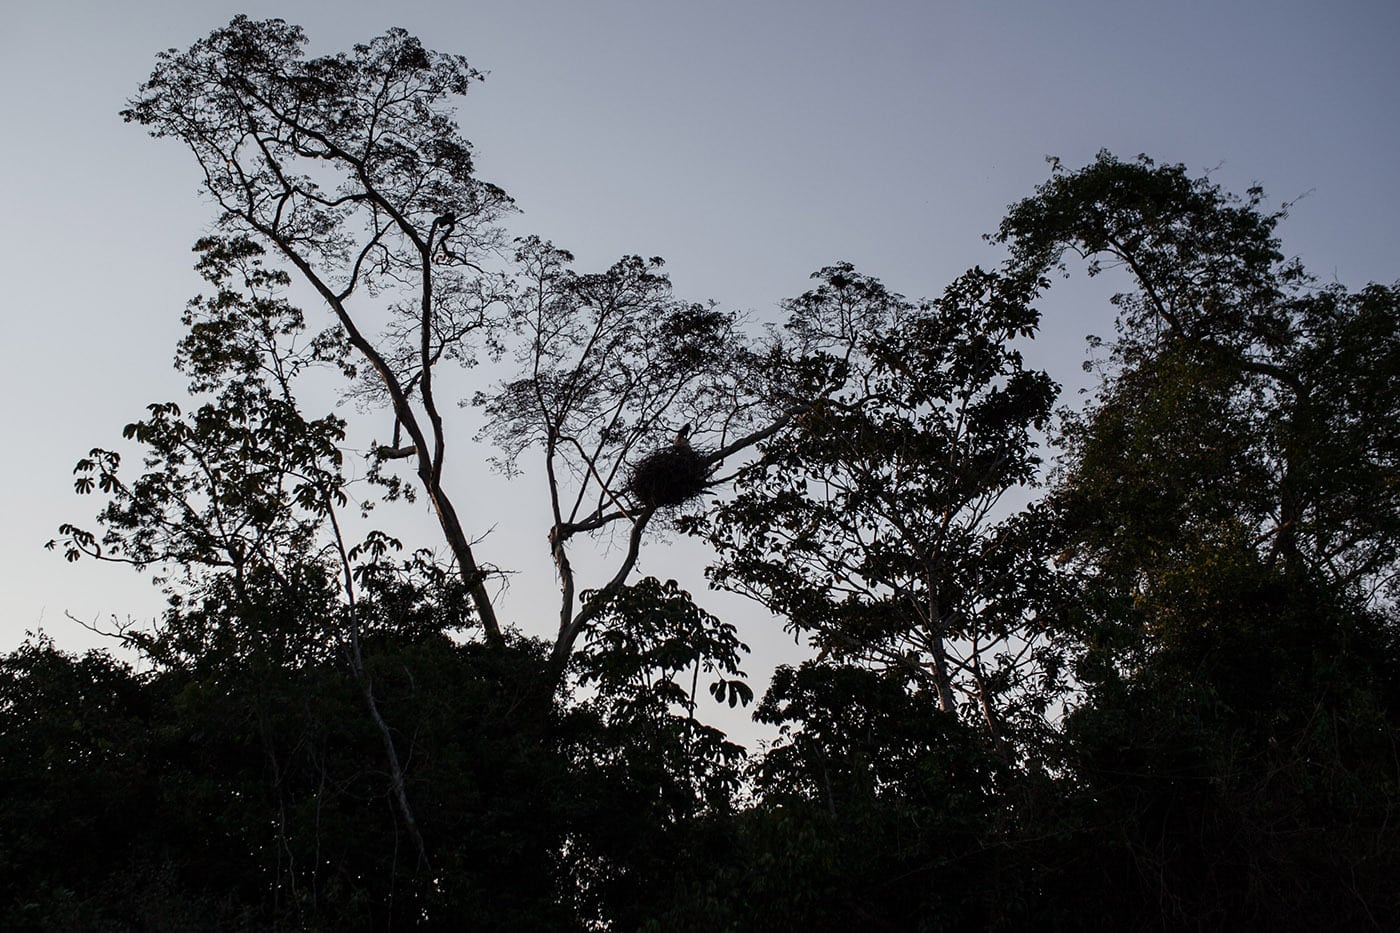 Bird - The Pampas in the Bolivian Amazon